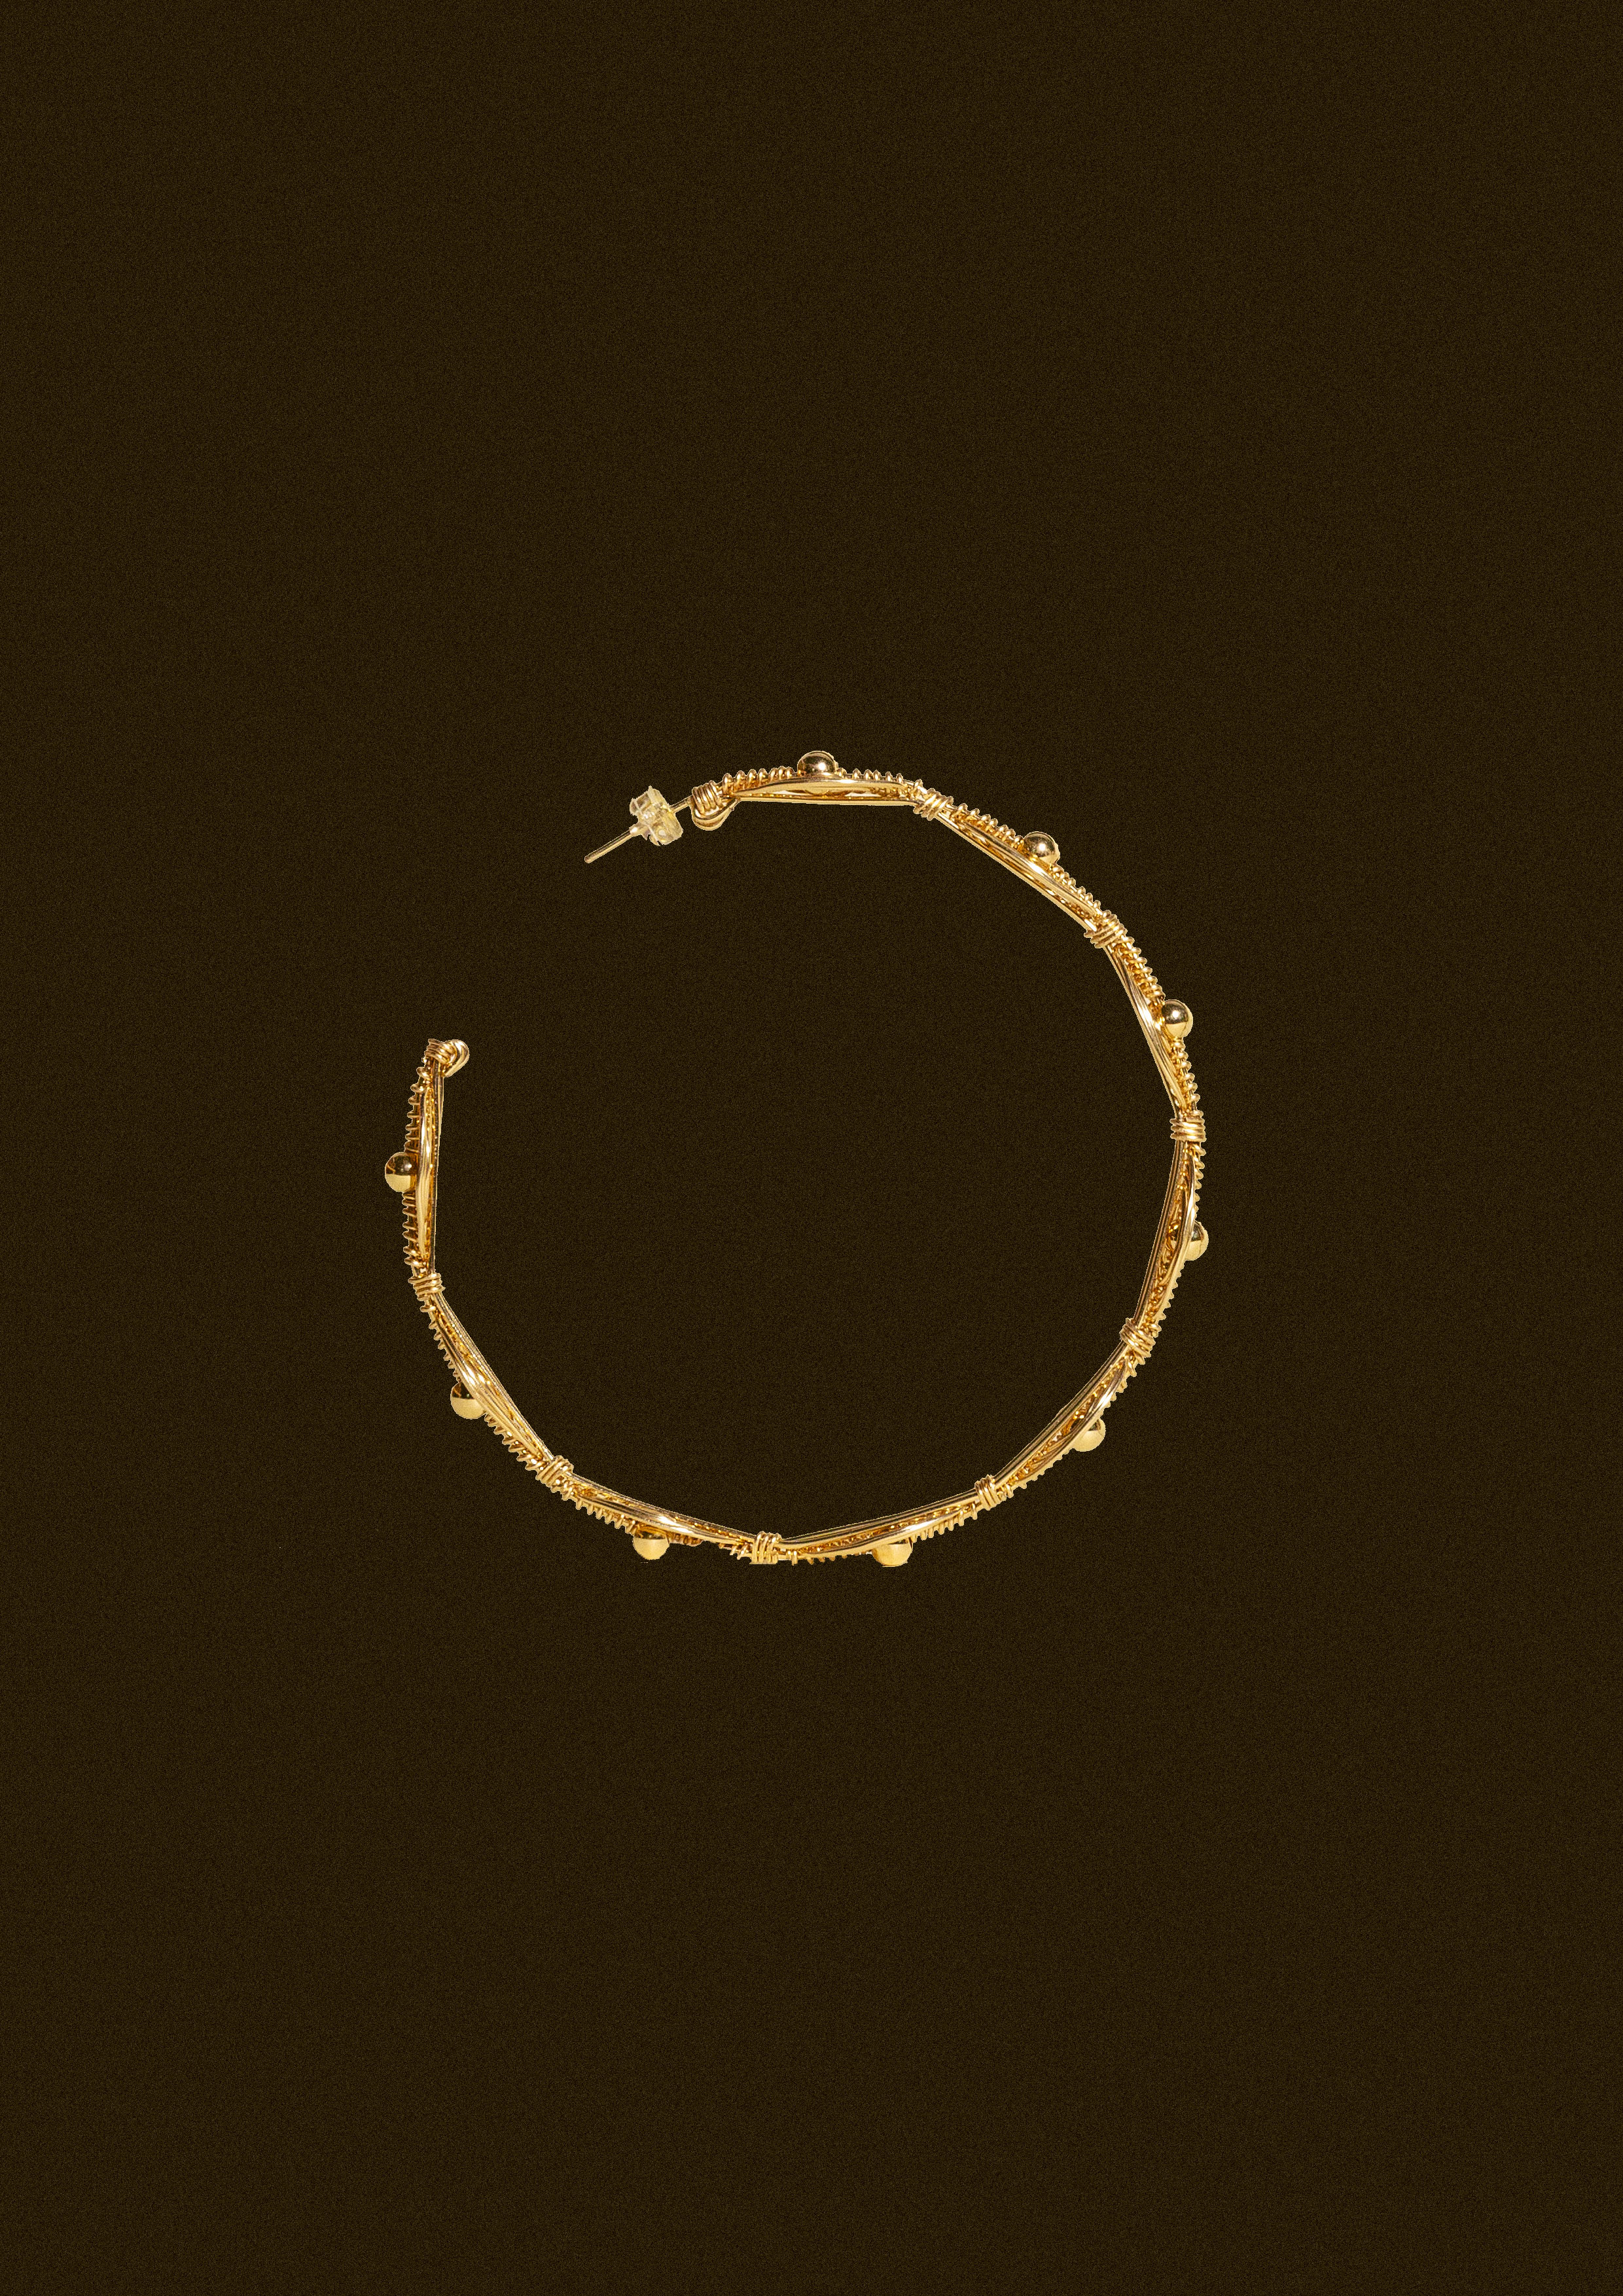 Serpentine - The Gold Hoops